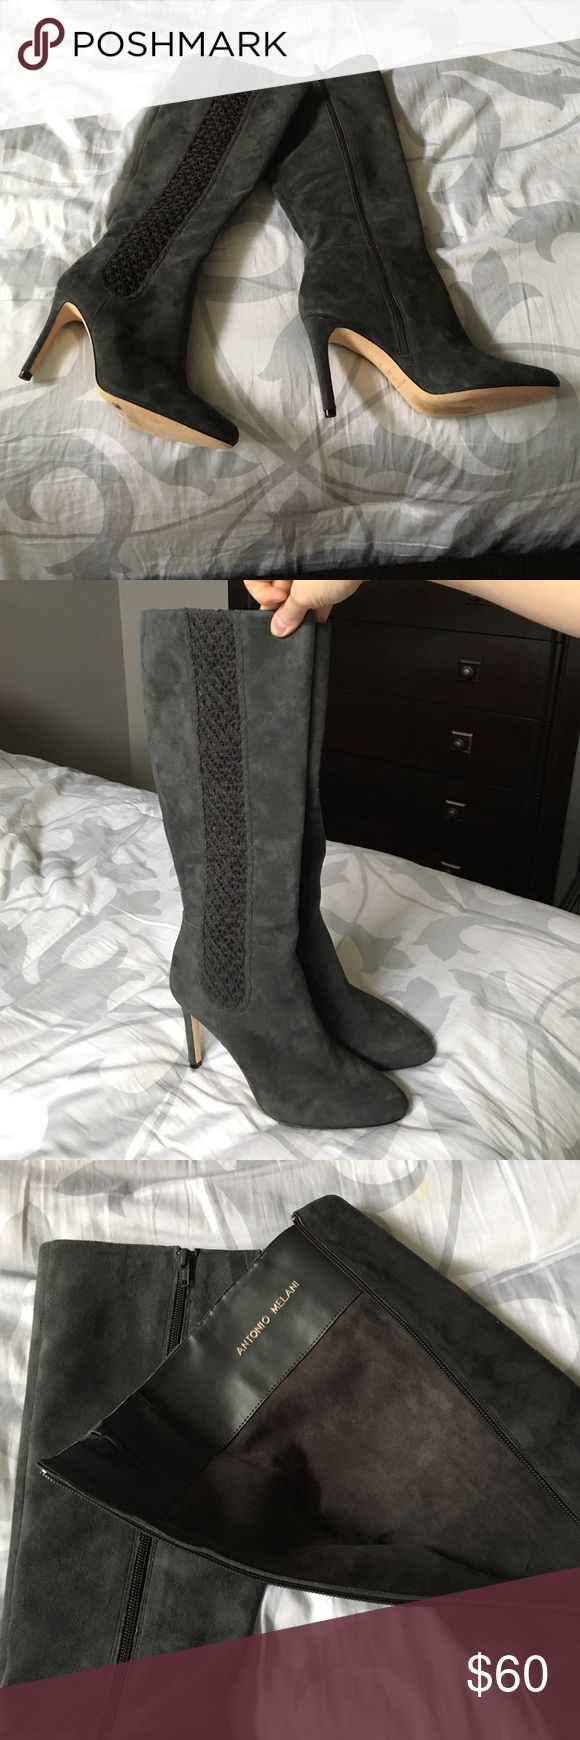 NWOT Antonio Melani Grey leather boots NWOT Antonio Melani Grey leather boots sit just below the knee. 4 inch heel. Side zip closure. Size 10 fits true to size. Beautiful design on side of boot. Any questions please ask! ANTONIO MELANI Shoes Heeled Boots